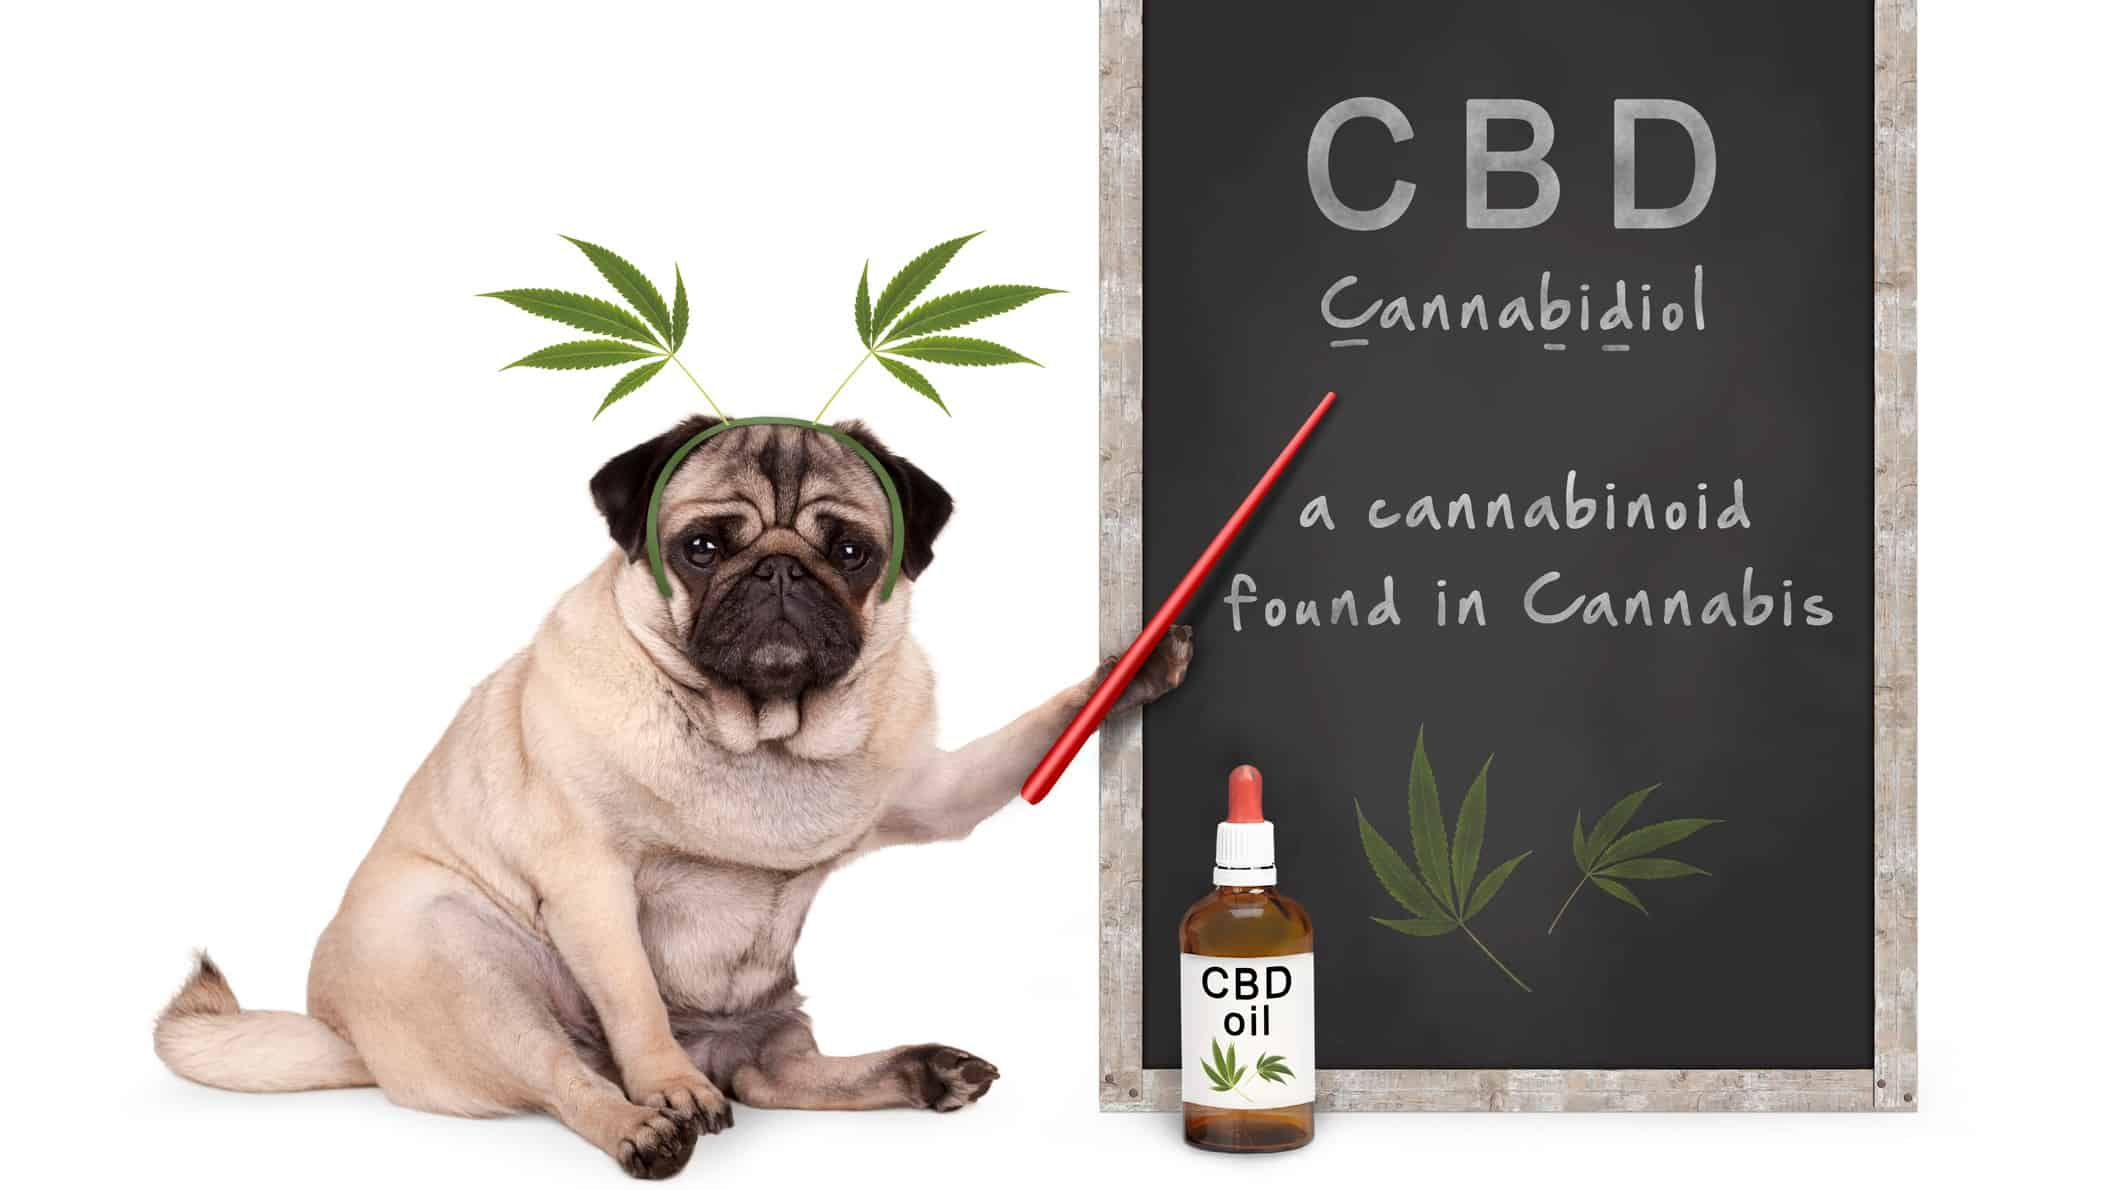 asx cannabis shares represented by pug dog pointing to blackboard with cannabis info on it